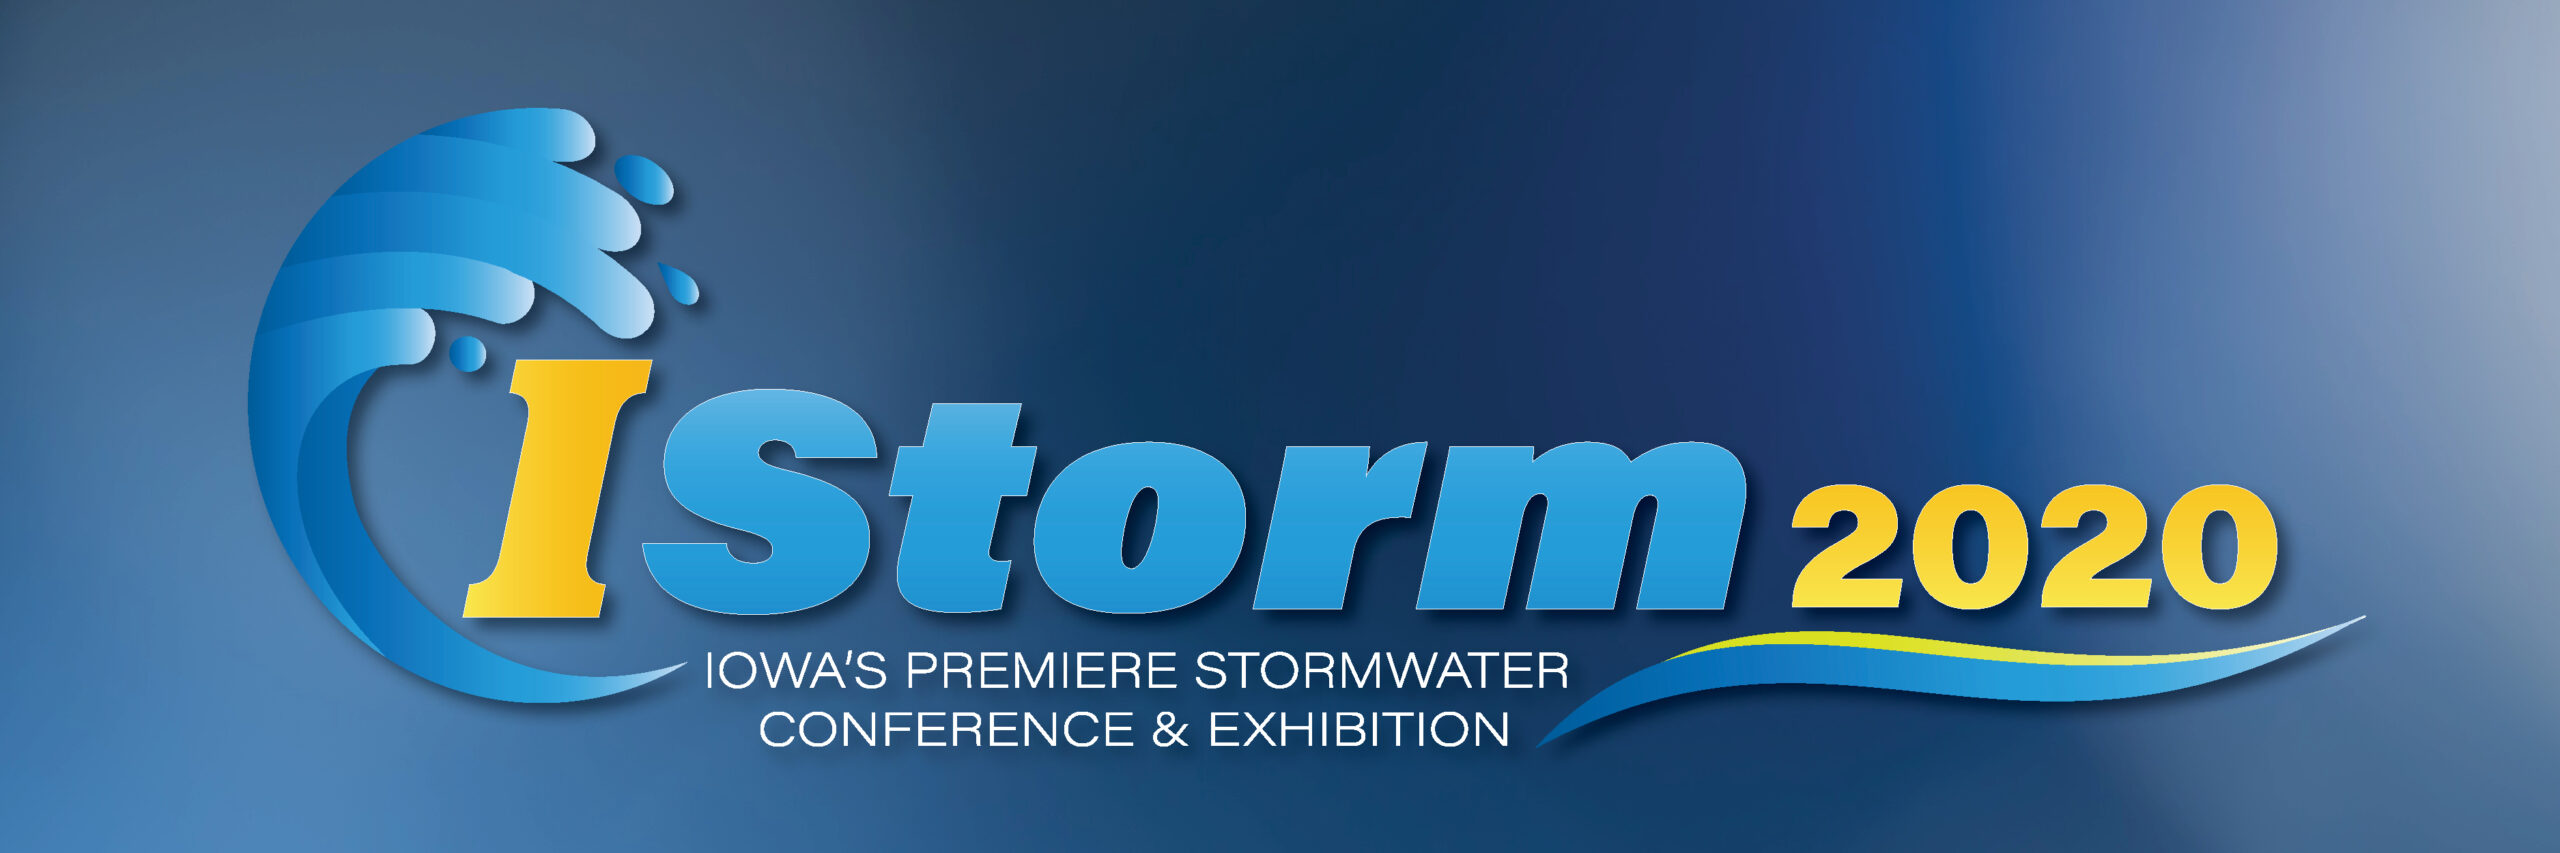 stormwater conference